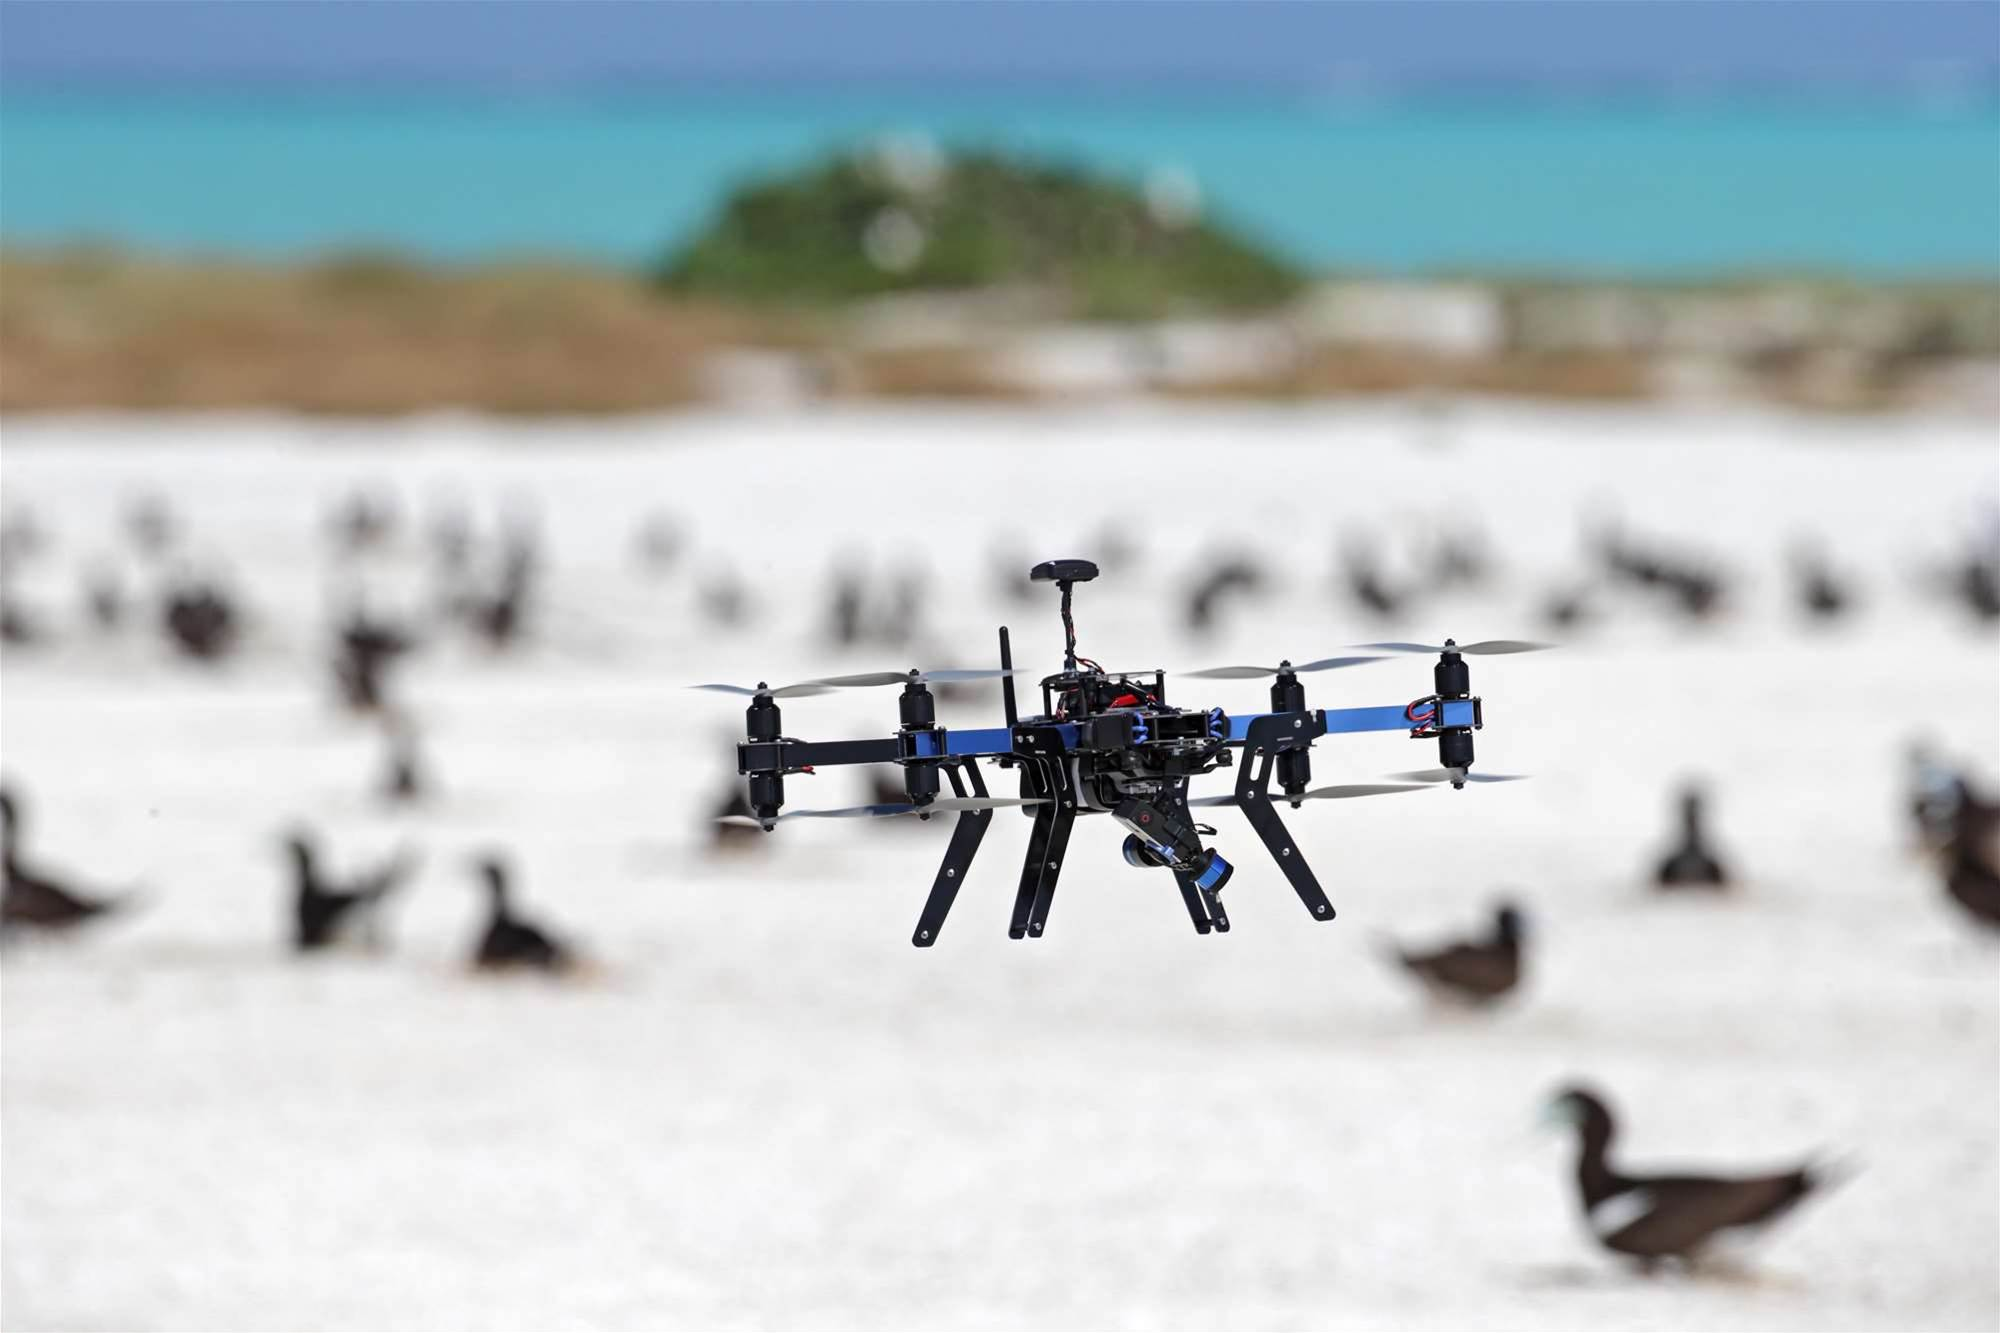 Drones Are Great At Counting Birds, Study Finds